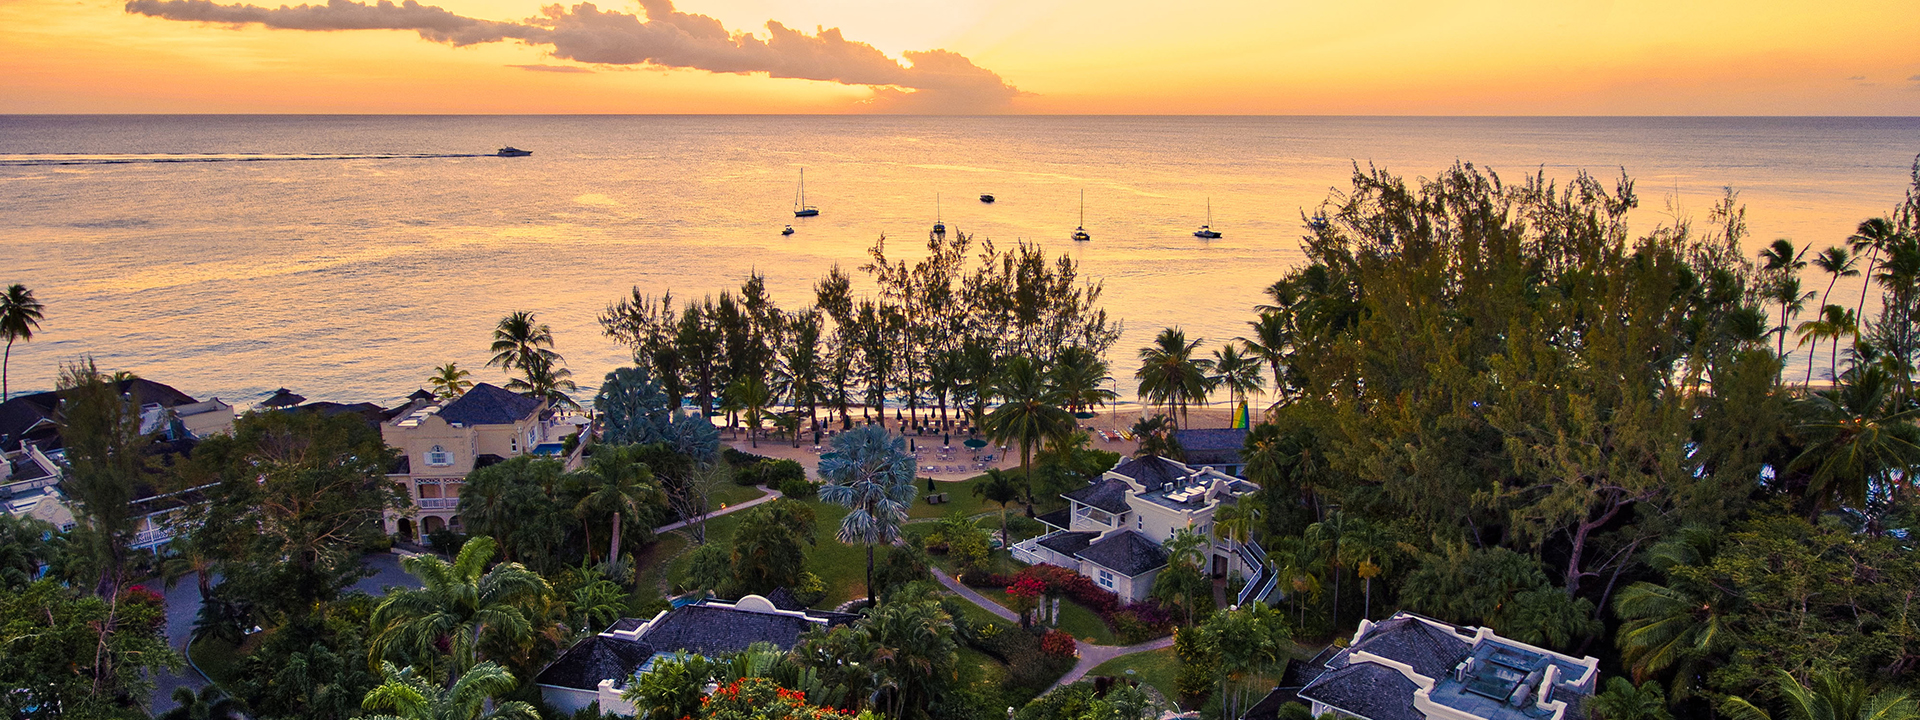 Coral Reef Club  - Barbados